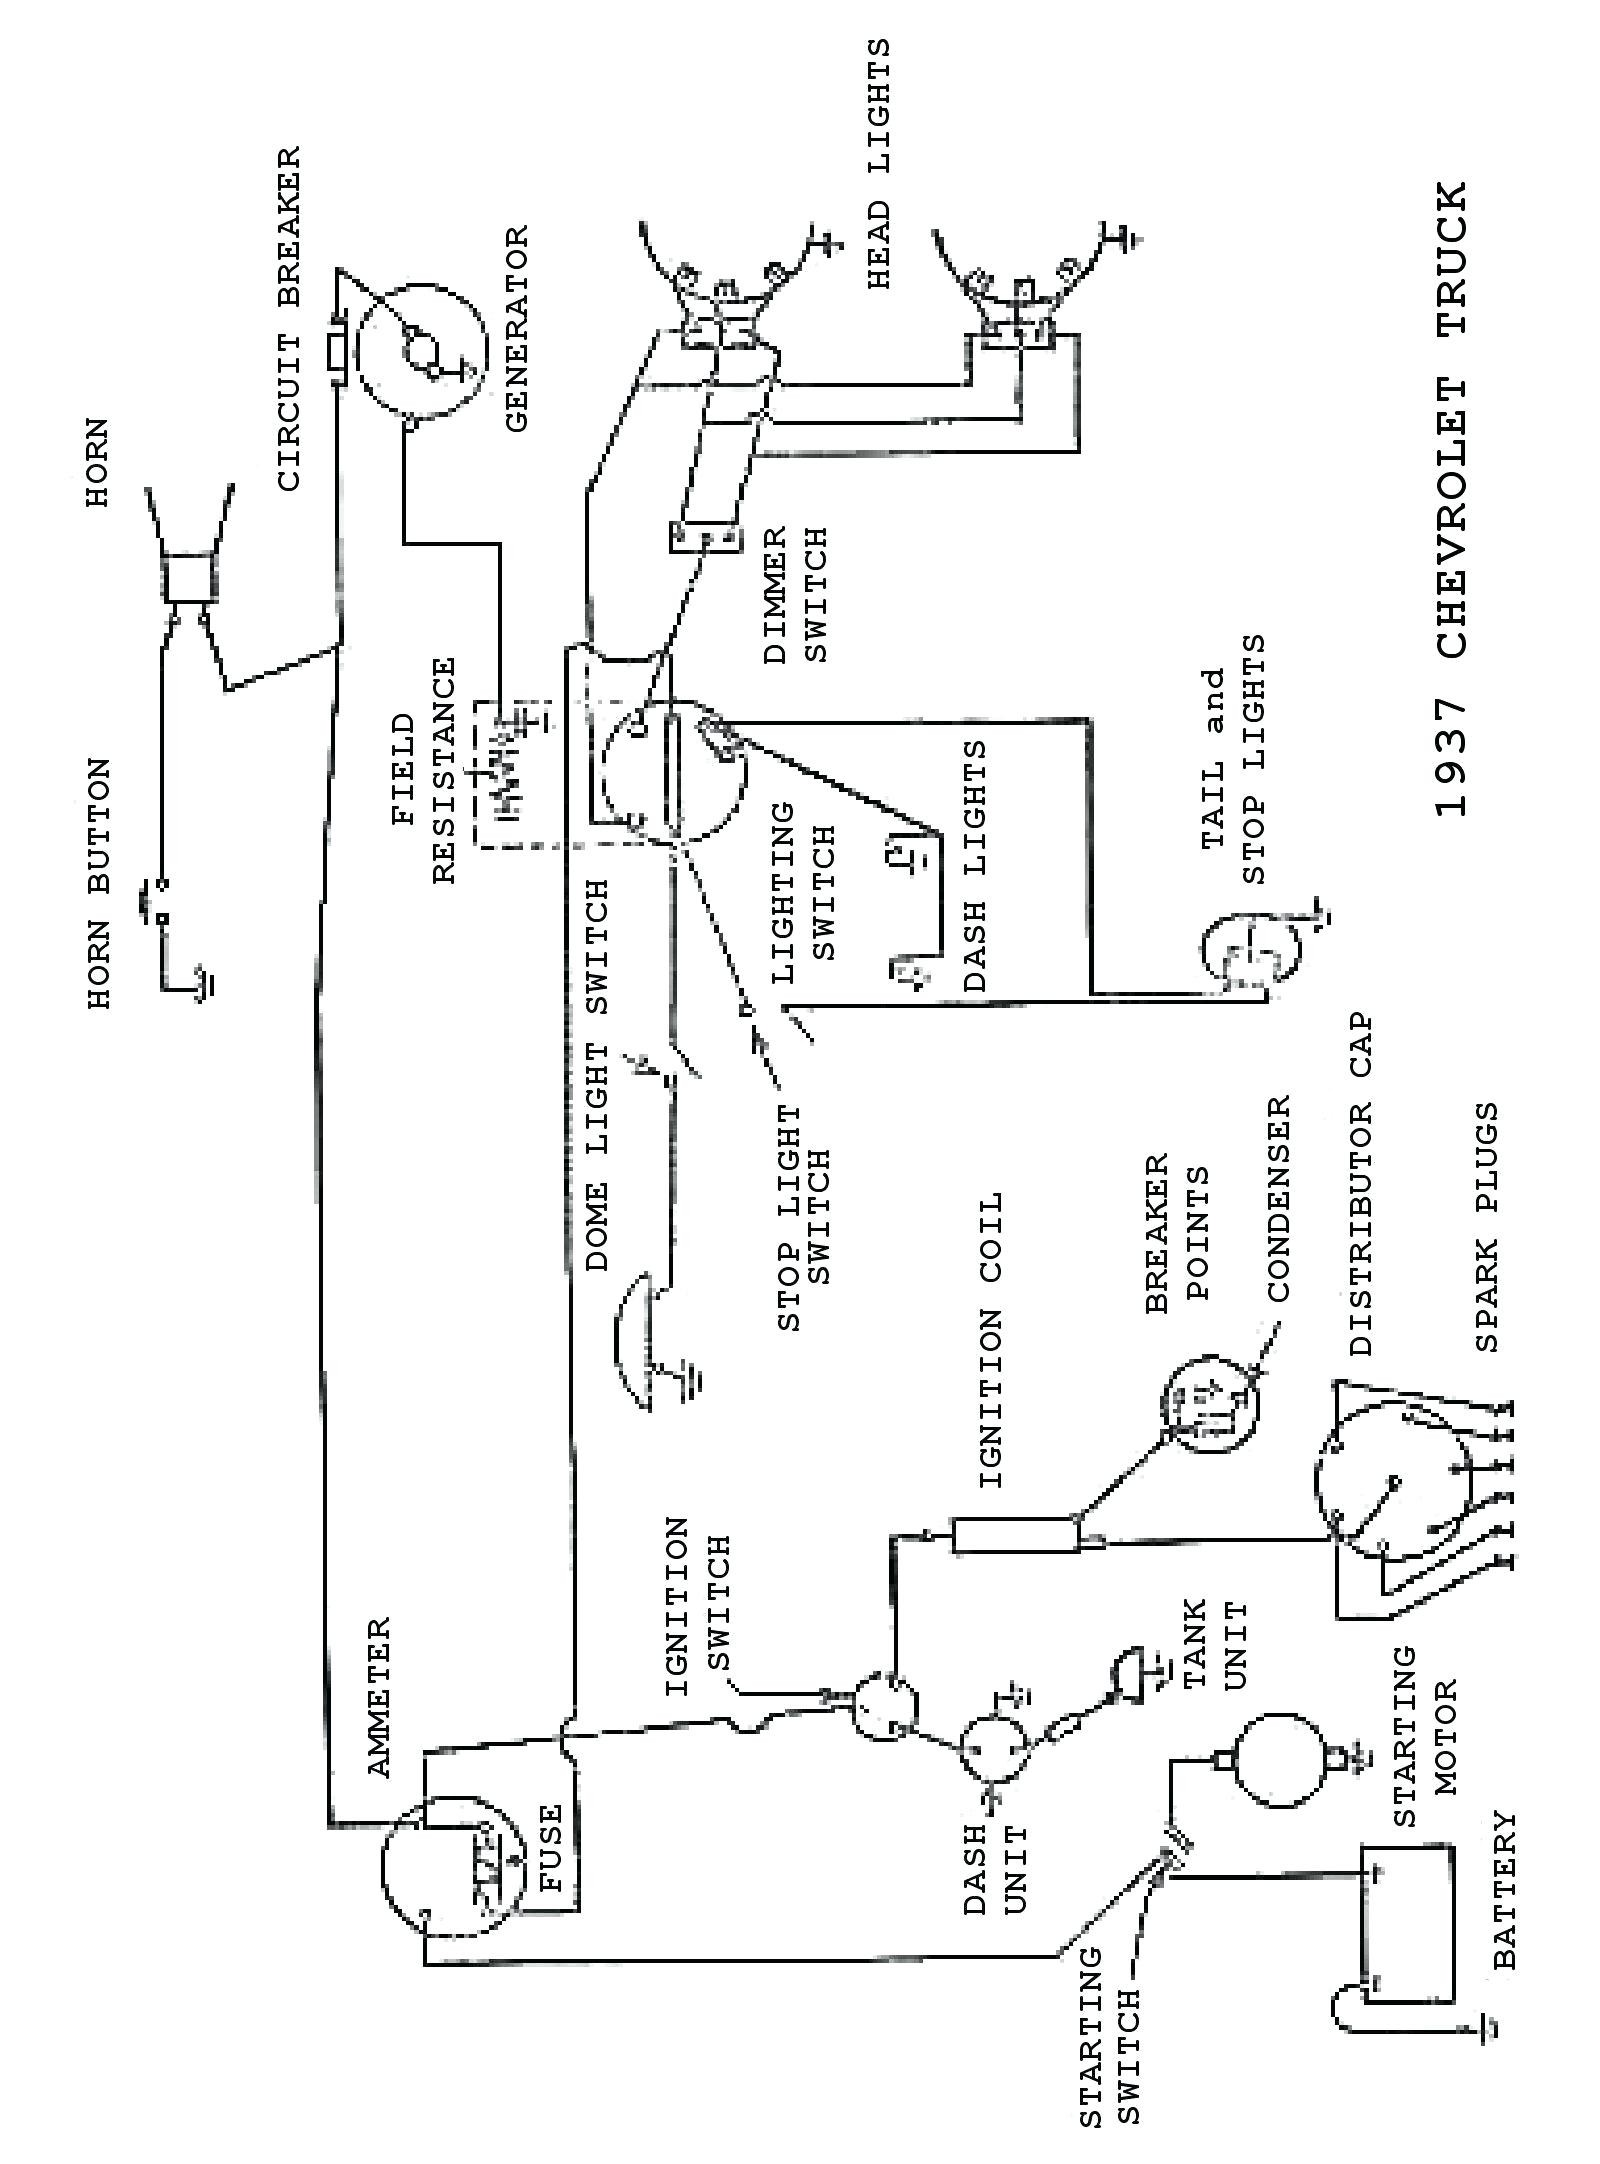 4020 12 Volt Wiring Diagram Diagrams Circuit Breakers John Deere 24v Library Rh 90 Codingcommunity De Electrical